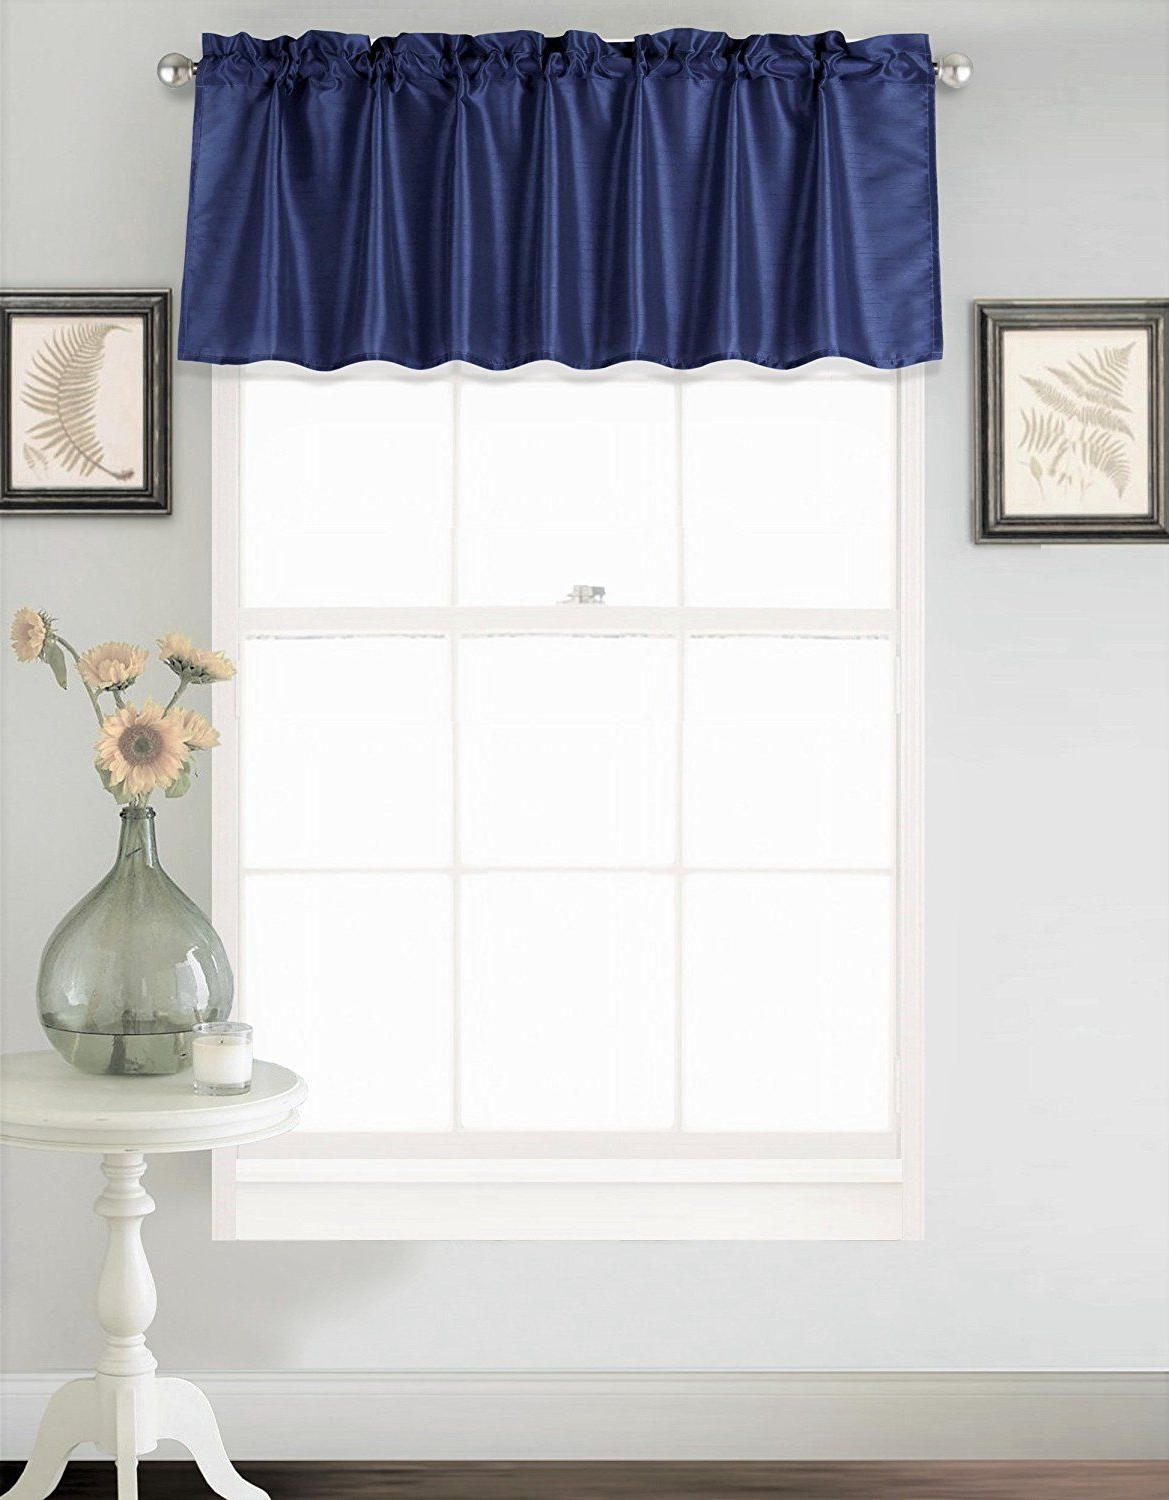 Most Recent Amazon: Gorgeoushomelinen (S18) 1 Elegant Straight Faux For Luxury Light Filtering Straight Curtain Valances (View 13 of 20)